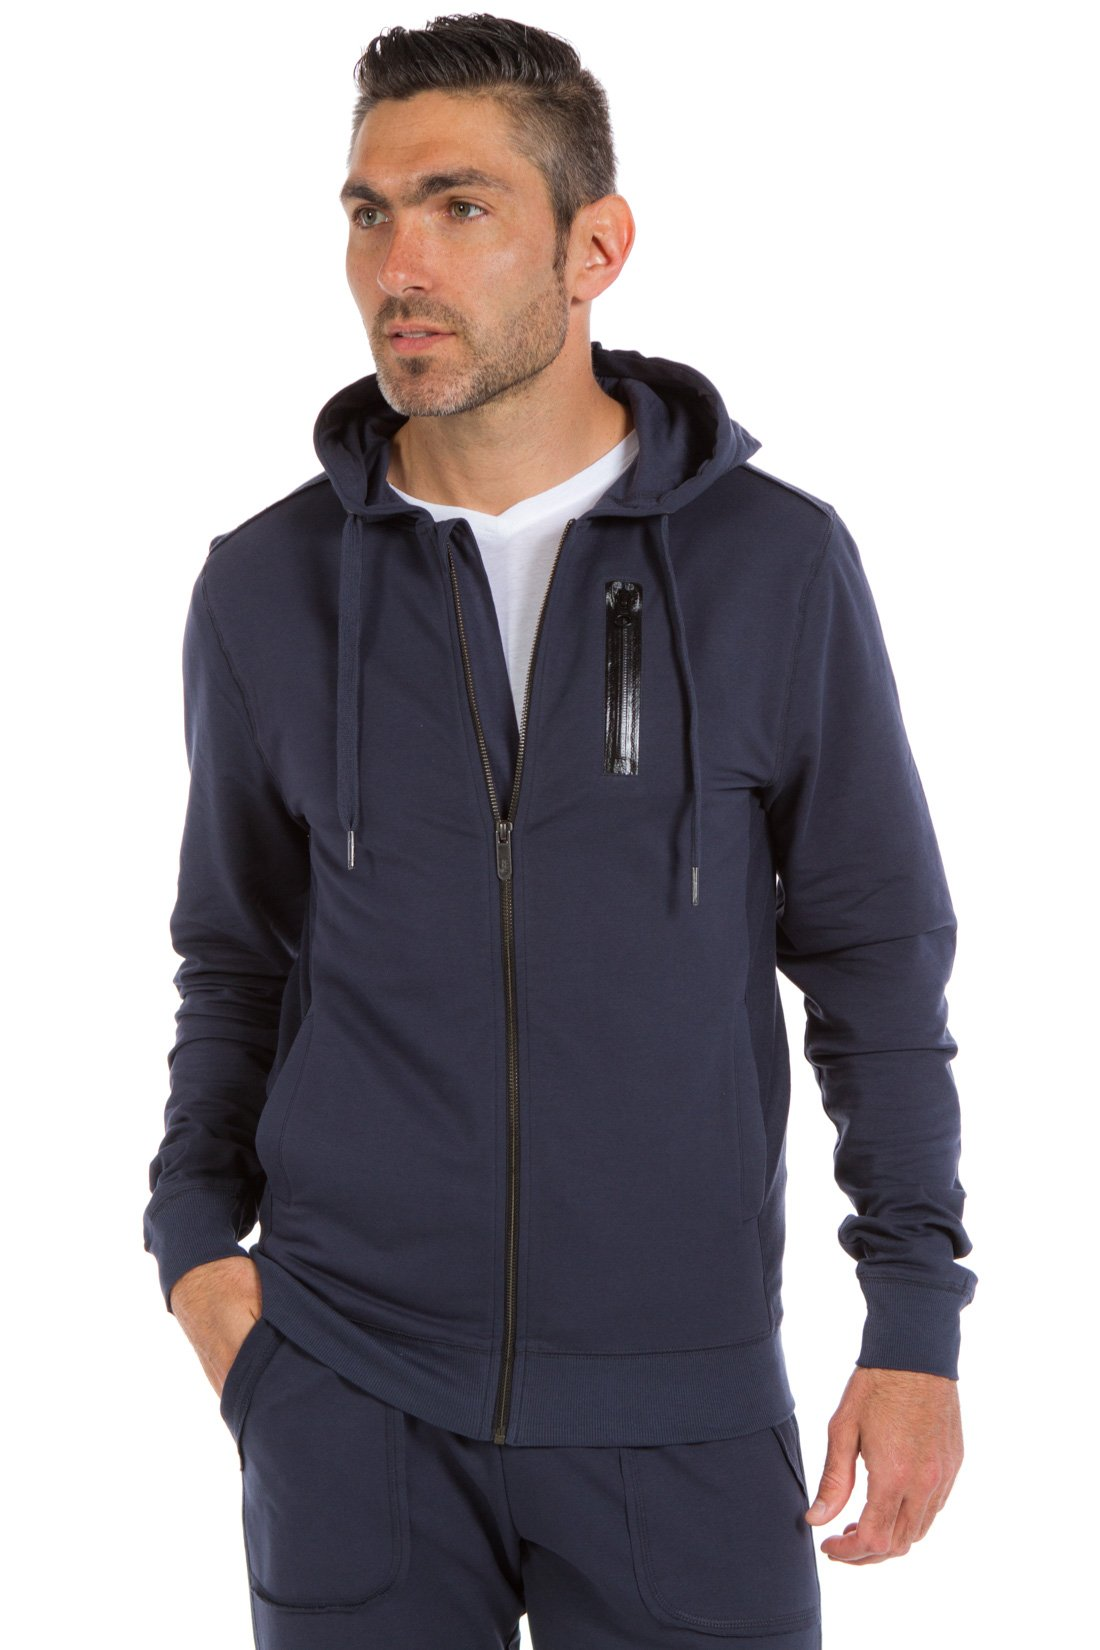 Ably Apparel Explorer Hoodie (Large, Navy)